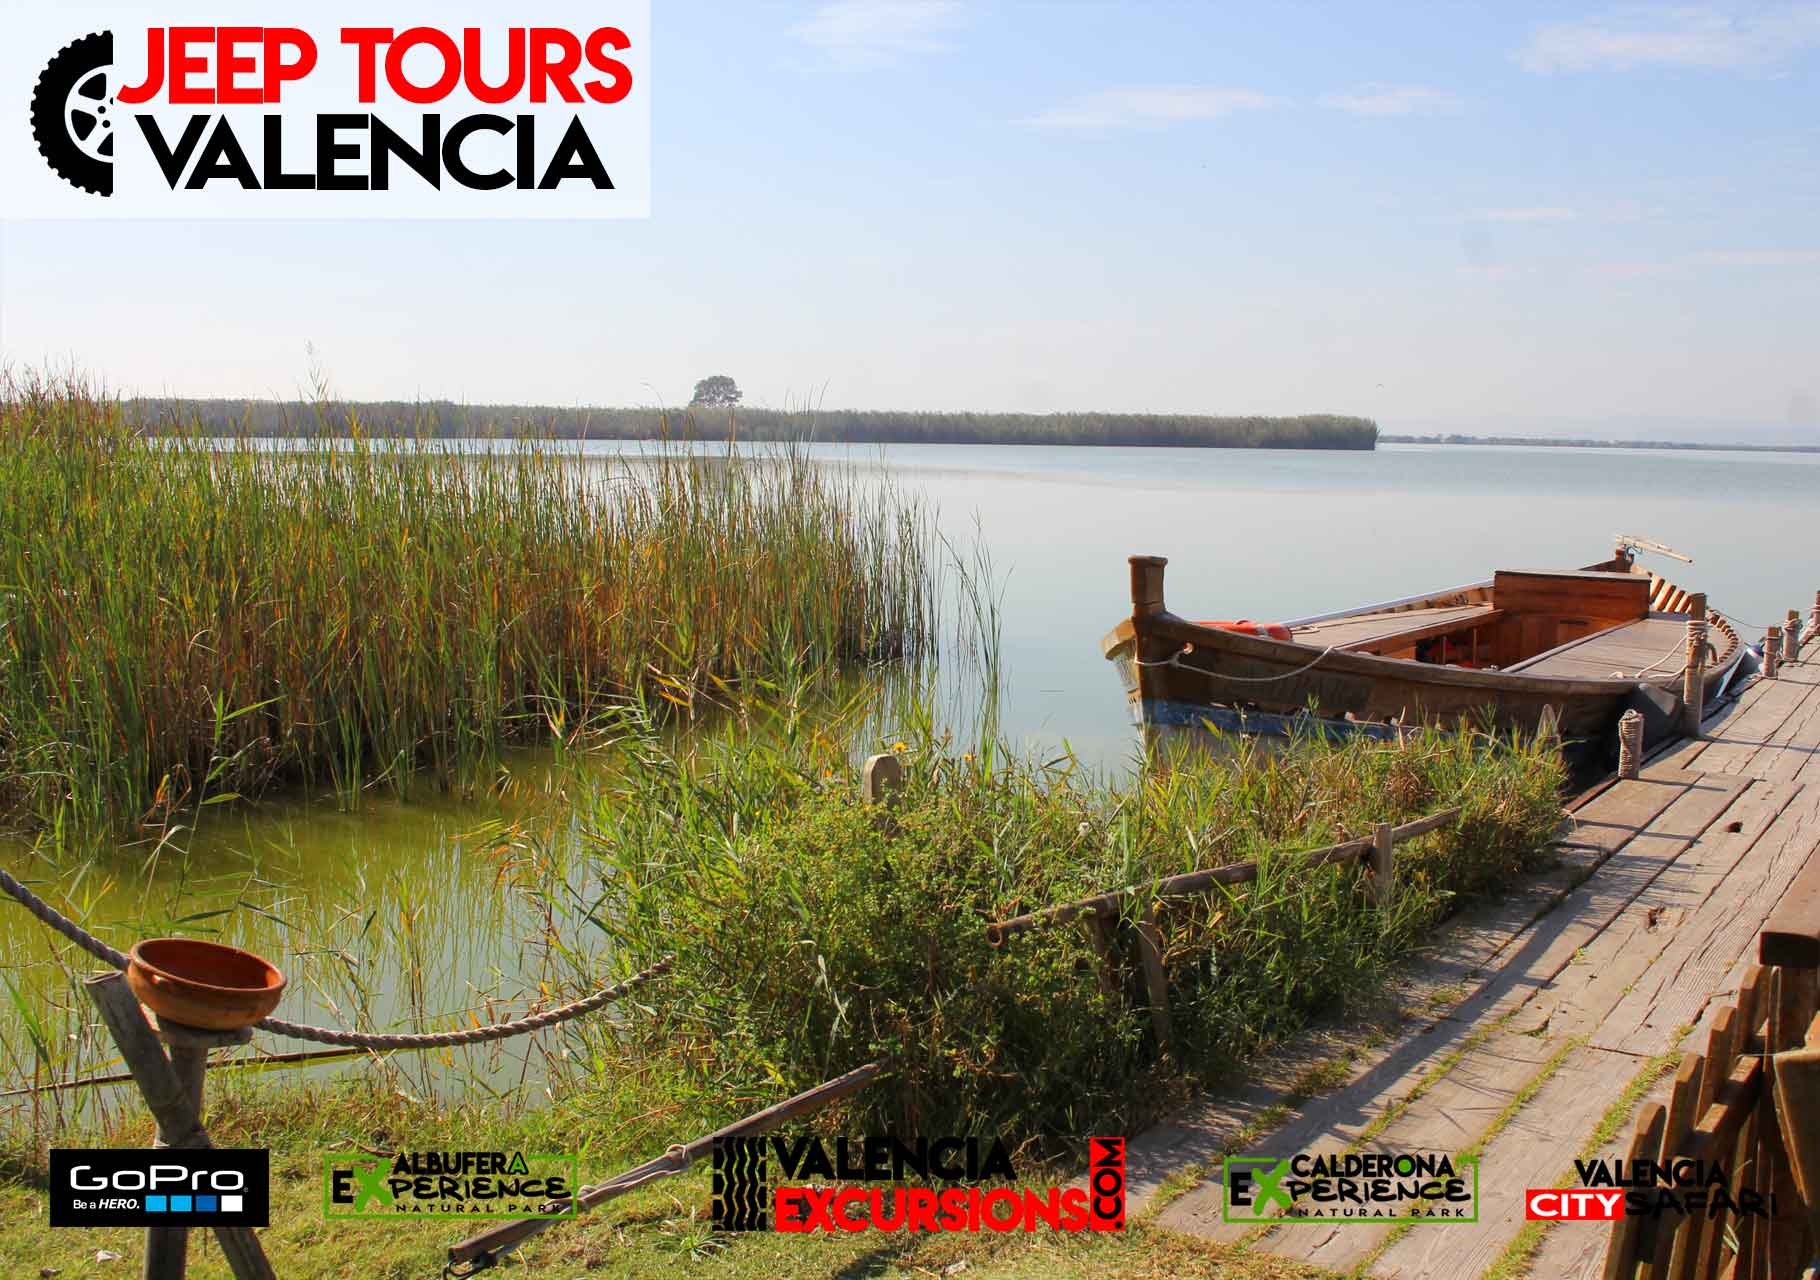 Albufera de Valencia Excursion in Albufera National Park during Albufera EXperience Jeep Tour Valencia